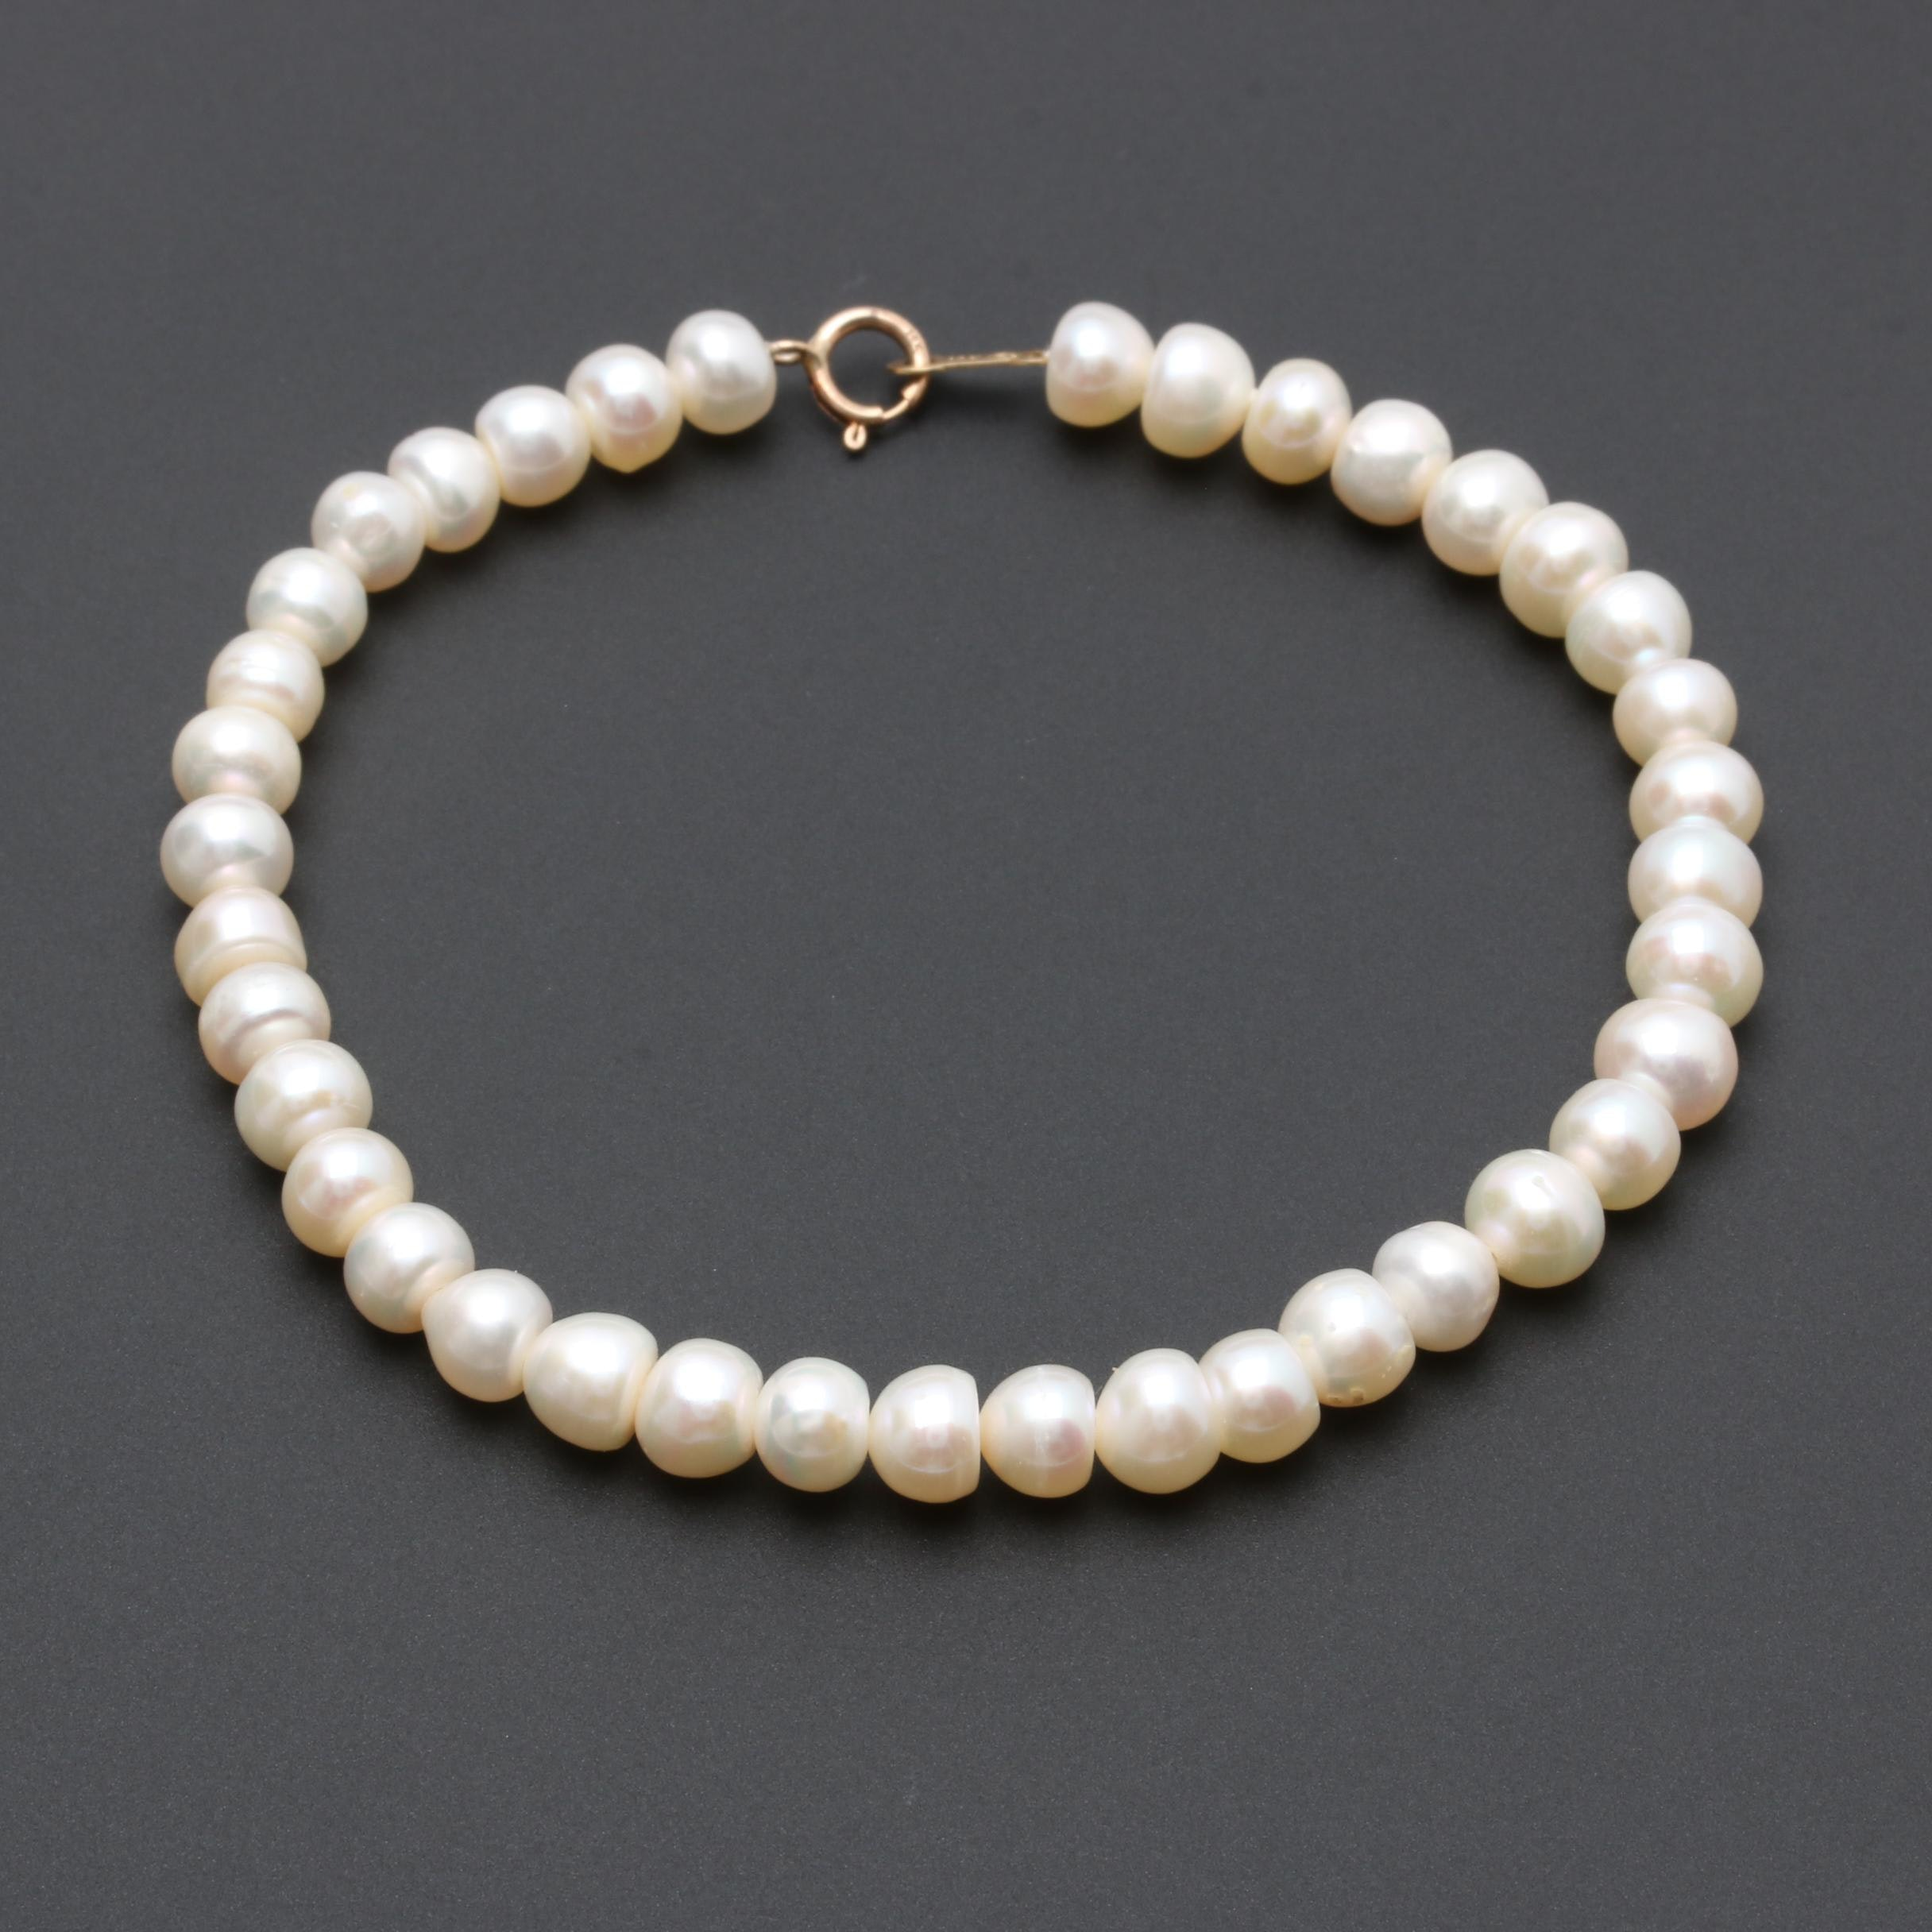 10K Yellow Gold Cultured Pearl Bracelet